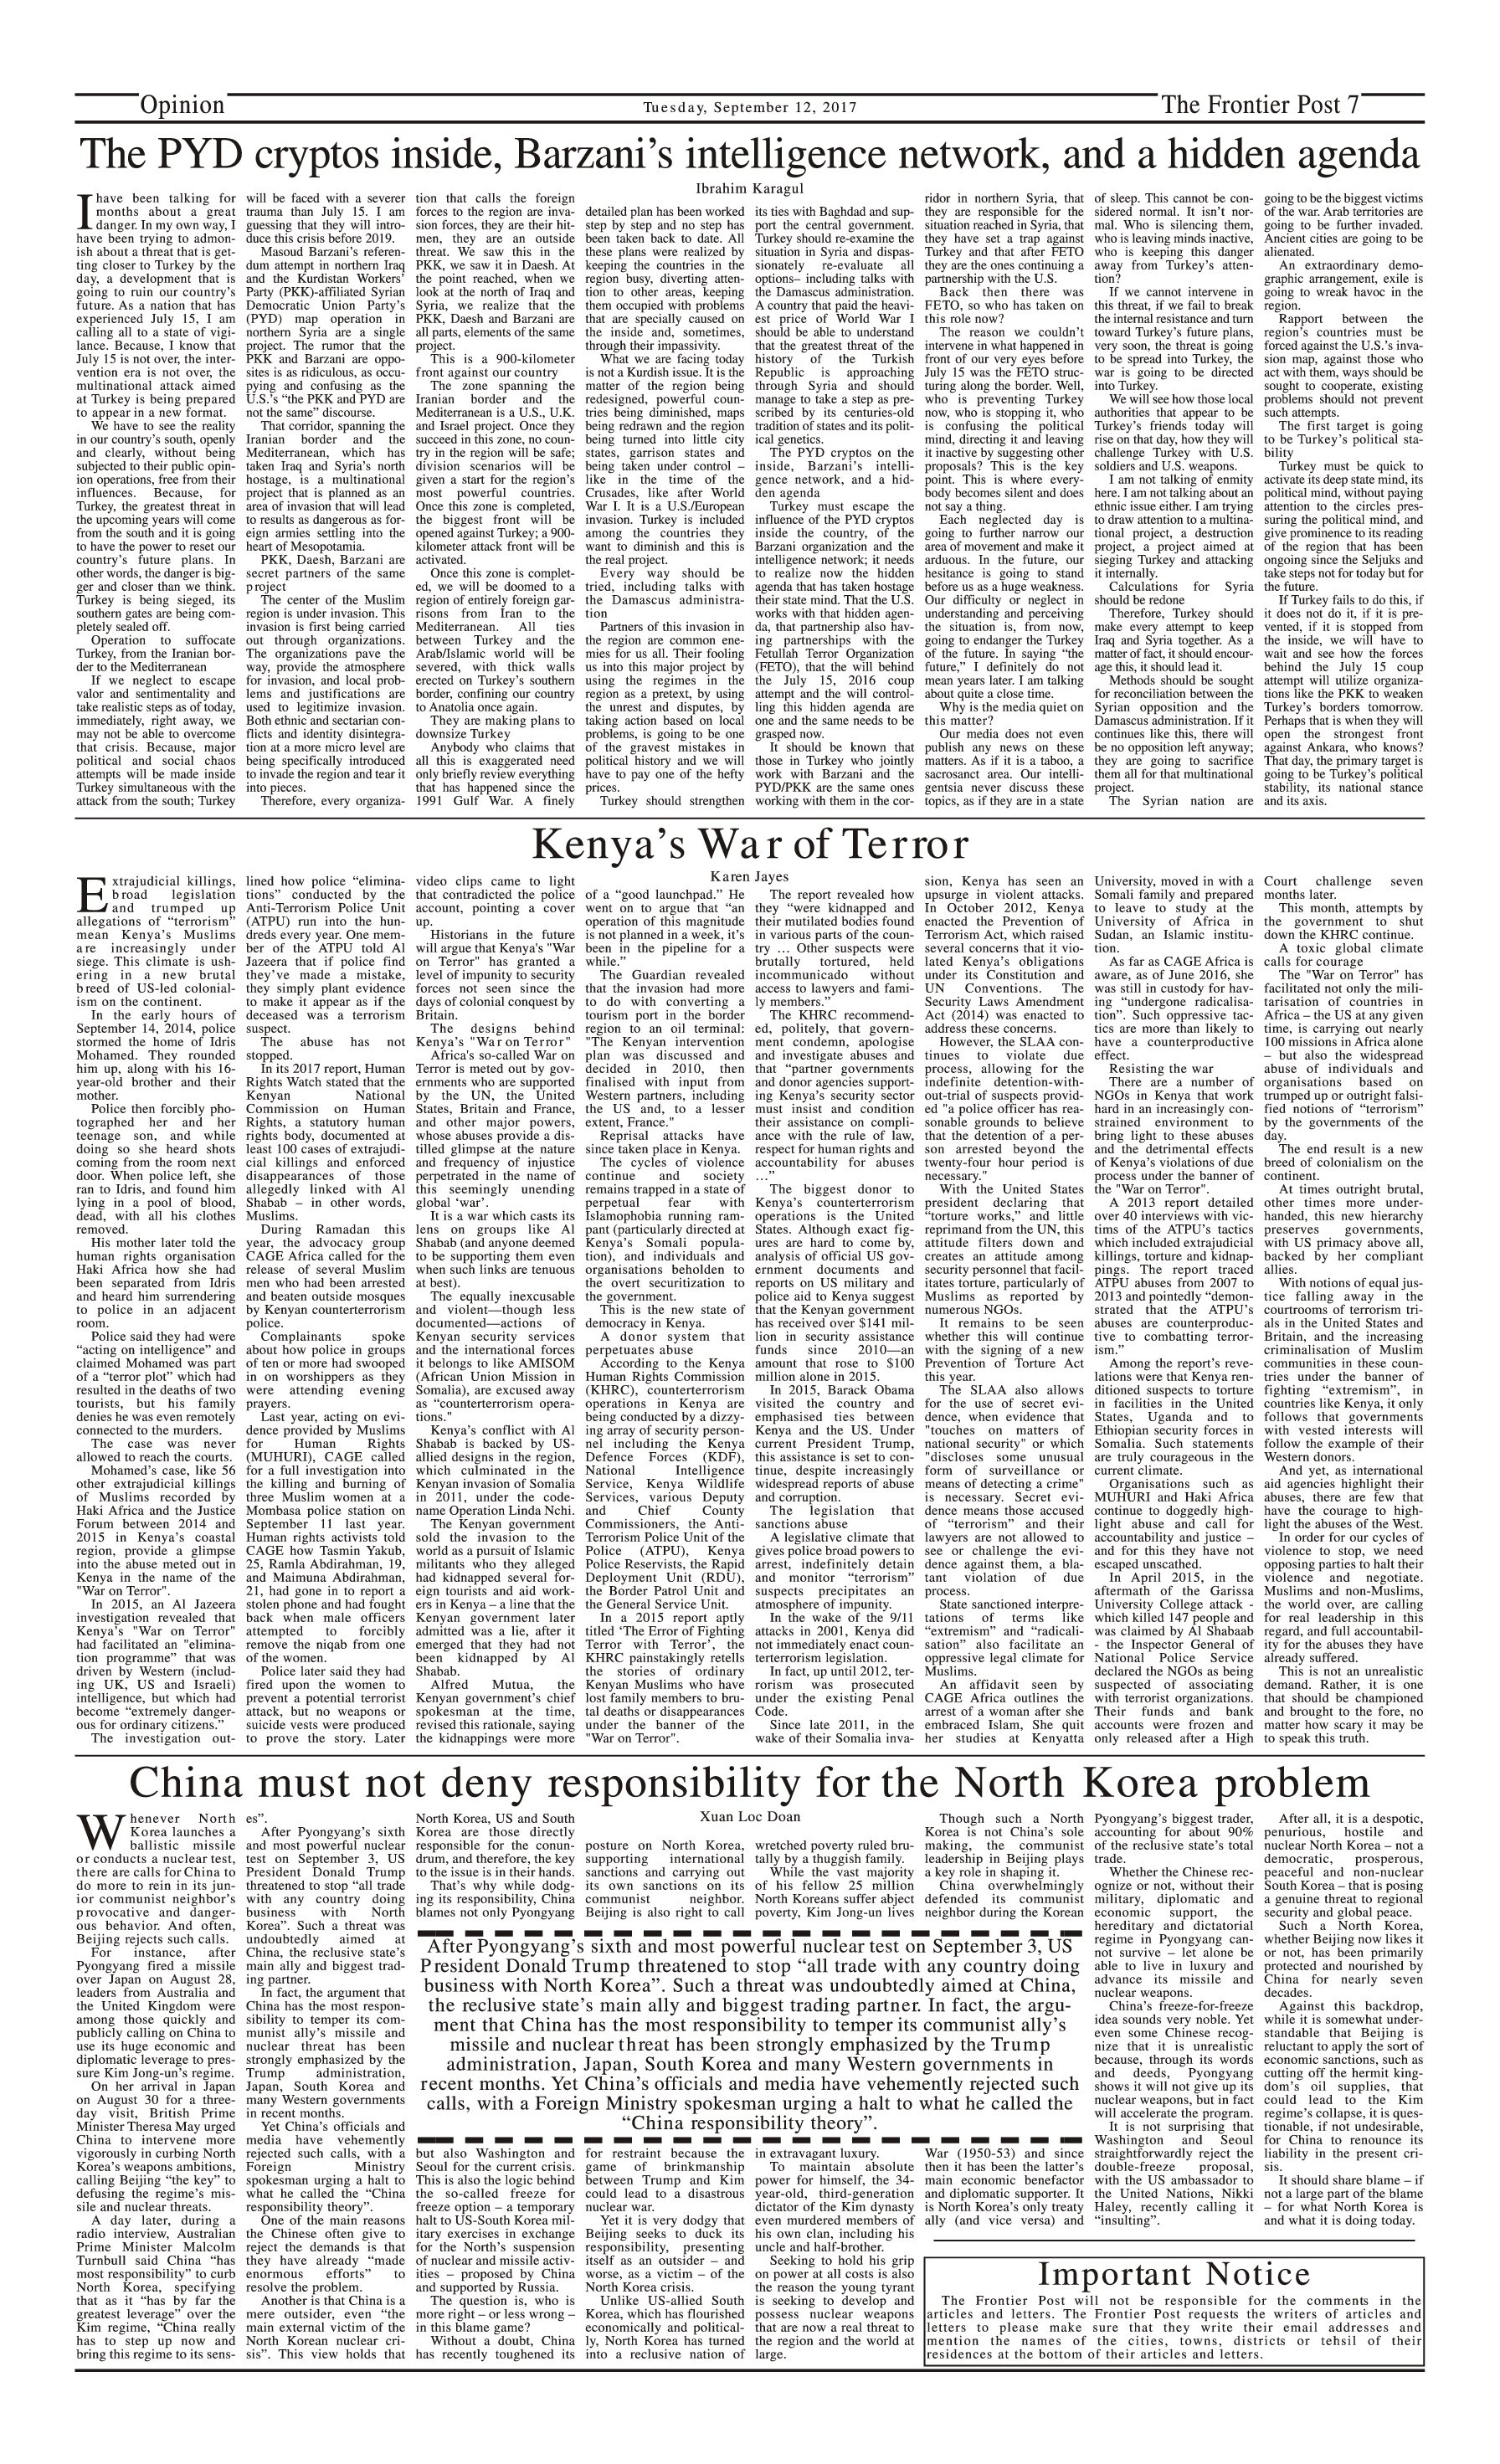 Opinion Page 12-09